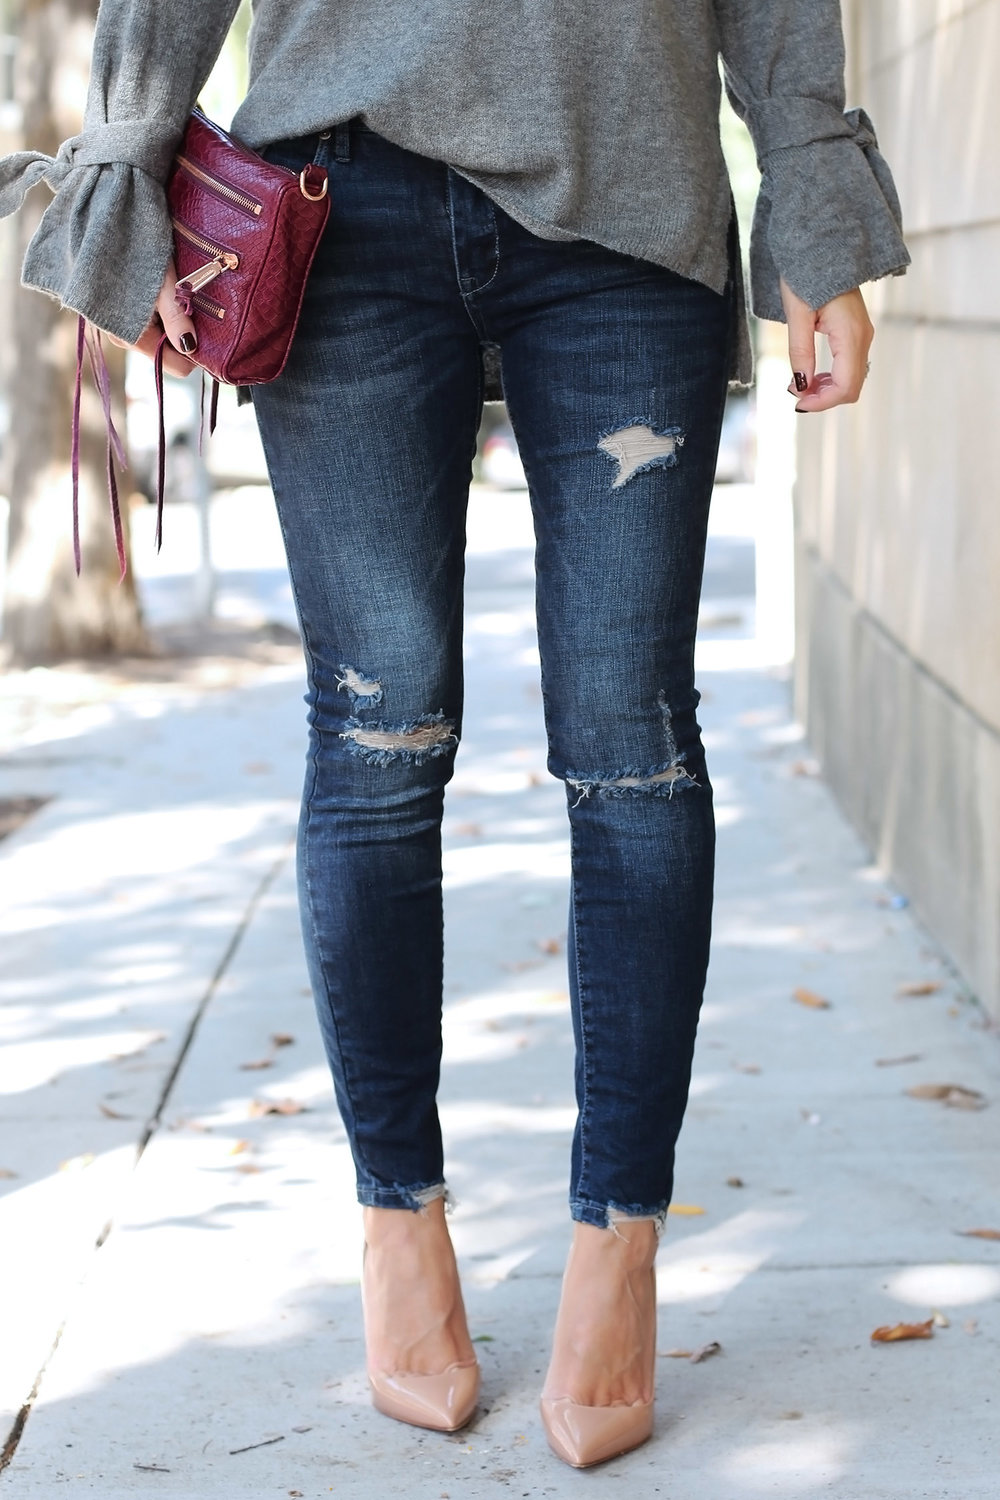 Distressed Jeans for Under $100, Nude High Heel Pumps